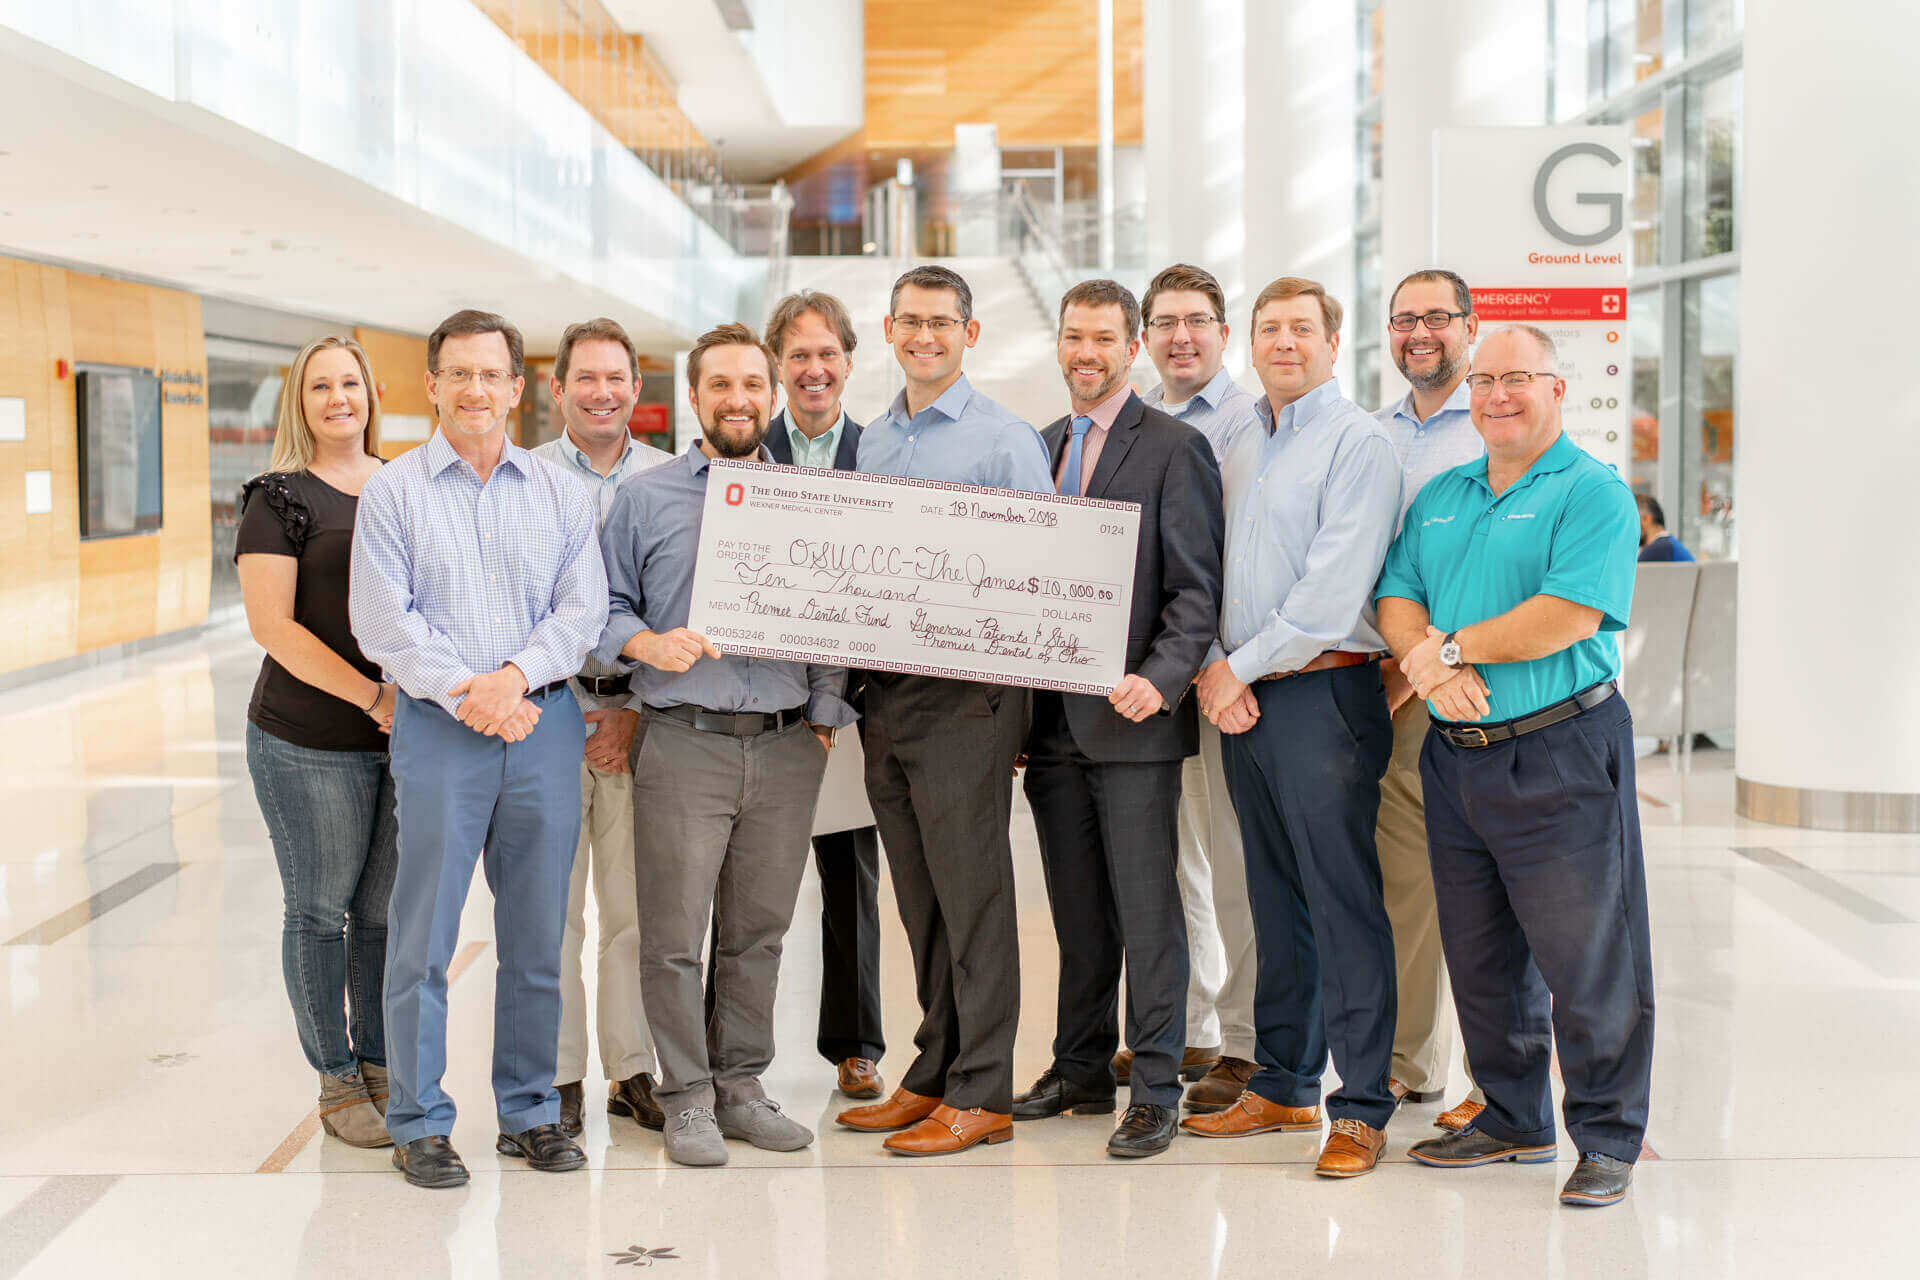 The doctors of Premier Dental of Ohio donating a large check to The Ohio State The James Cancer Hospital